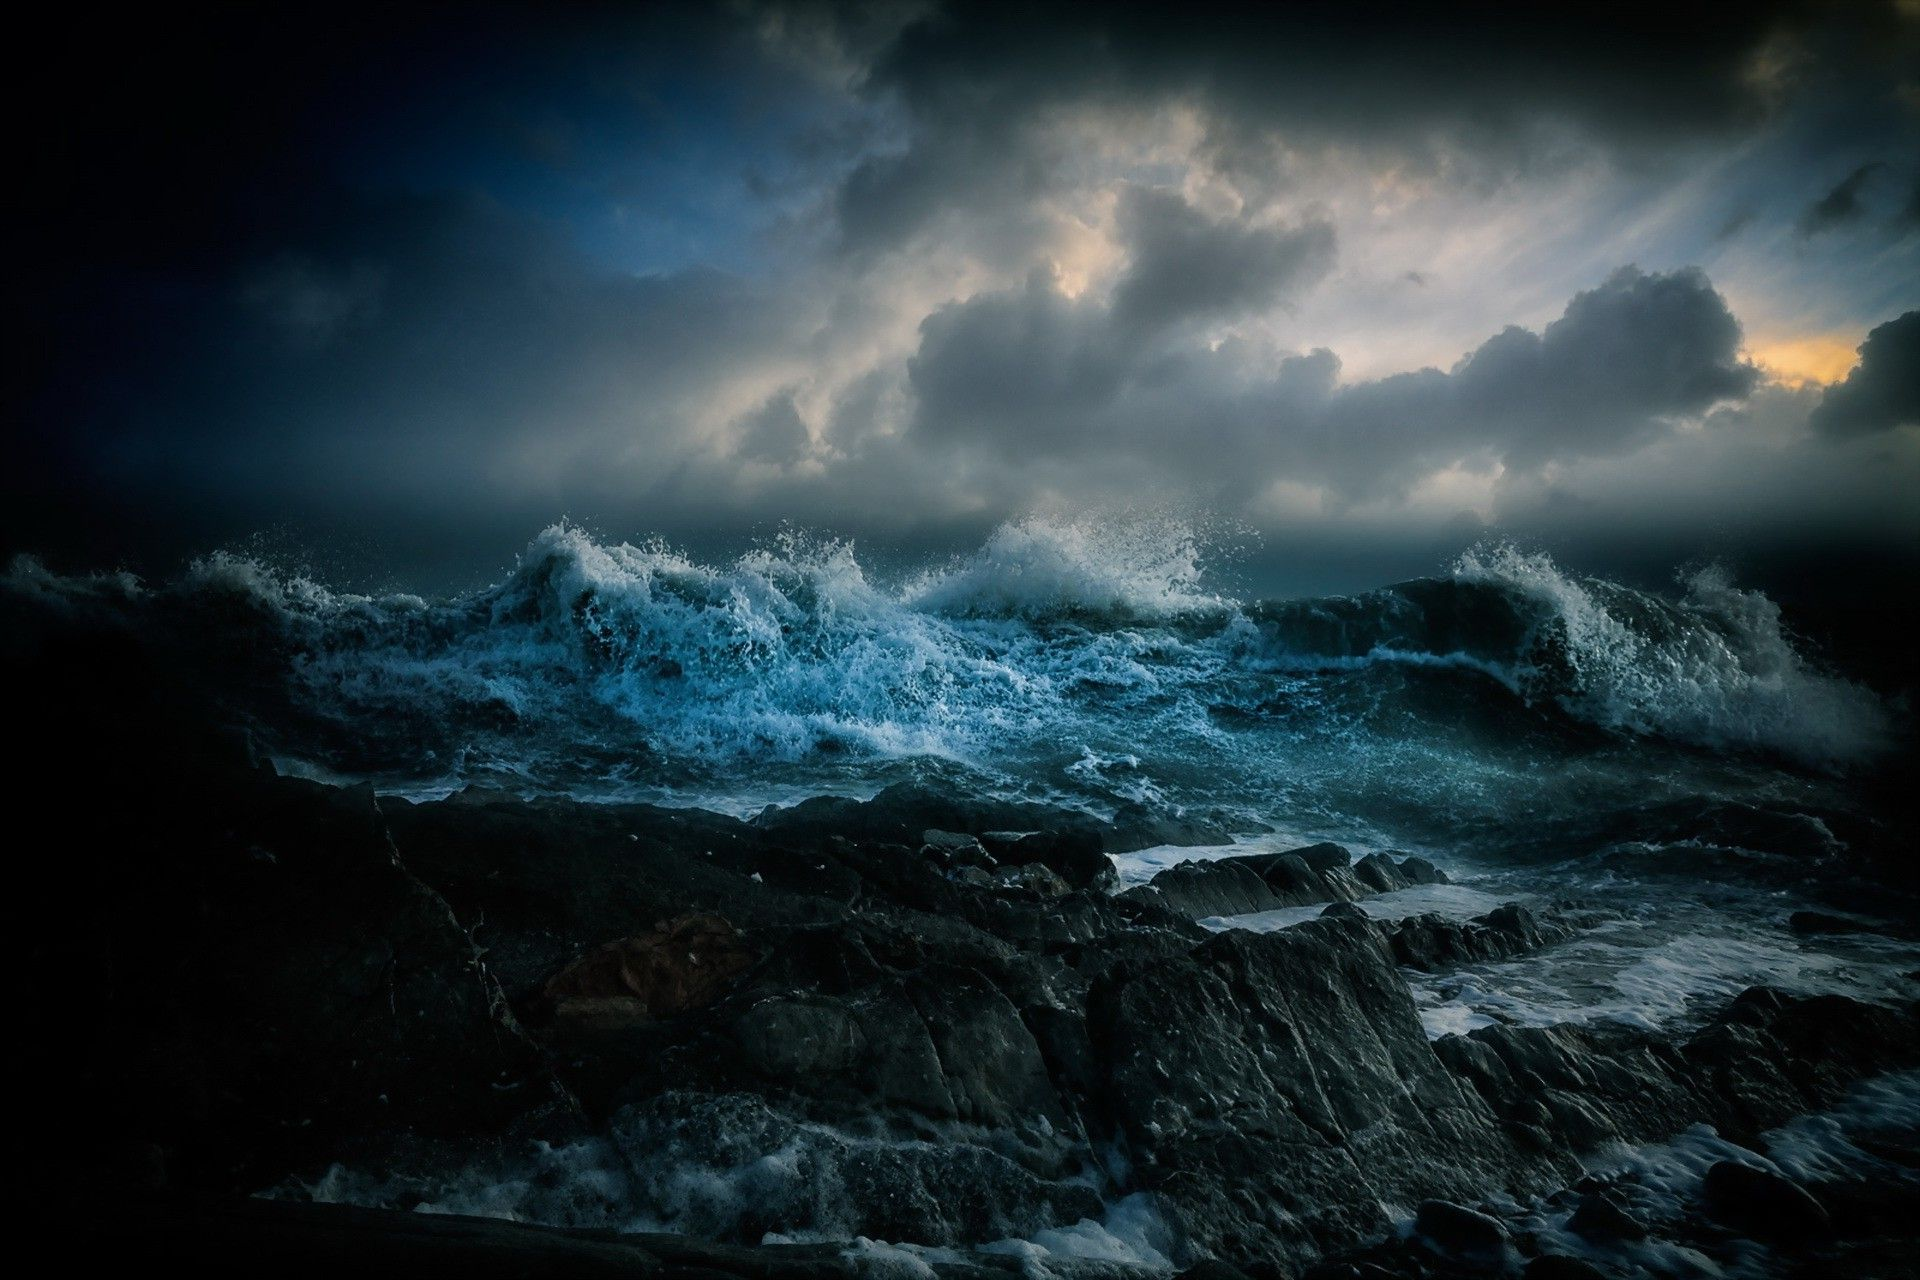 Storm Character Sea Wallpaper And Background In 2019 Sea